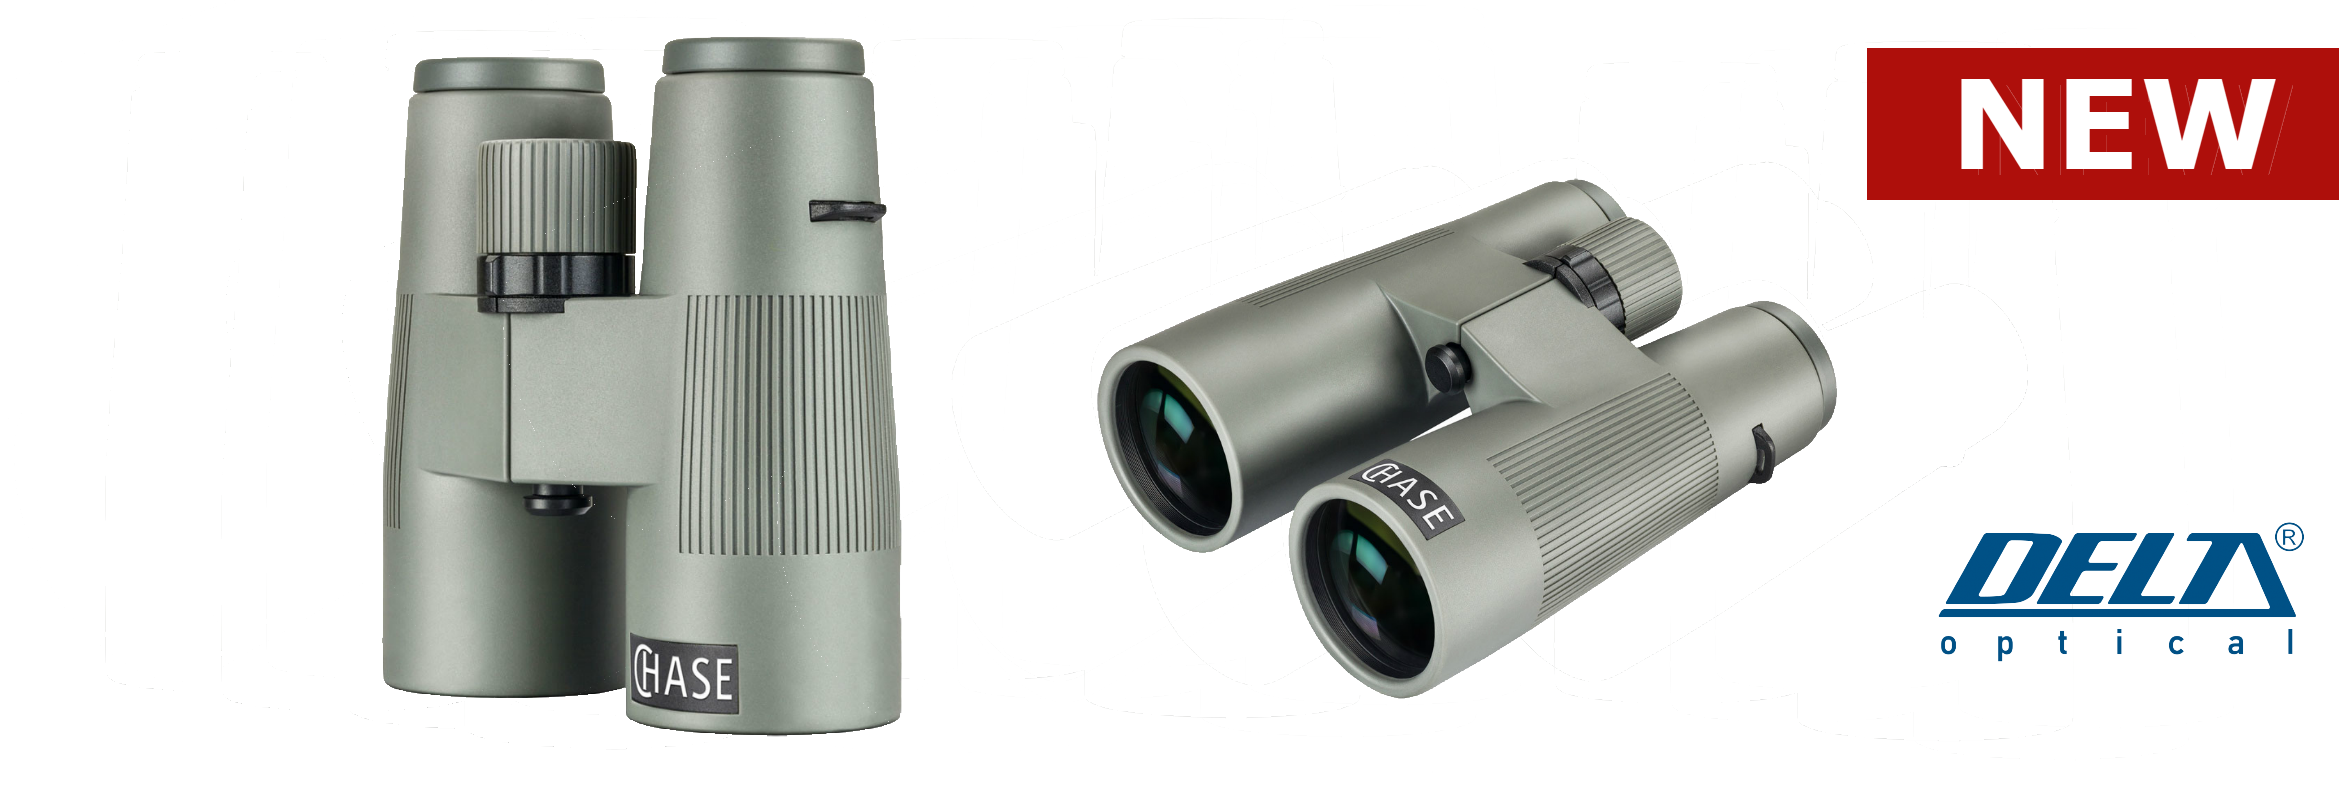 Delta Optical Chase binoculars